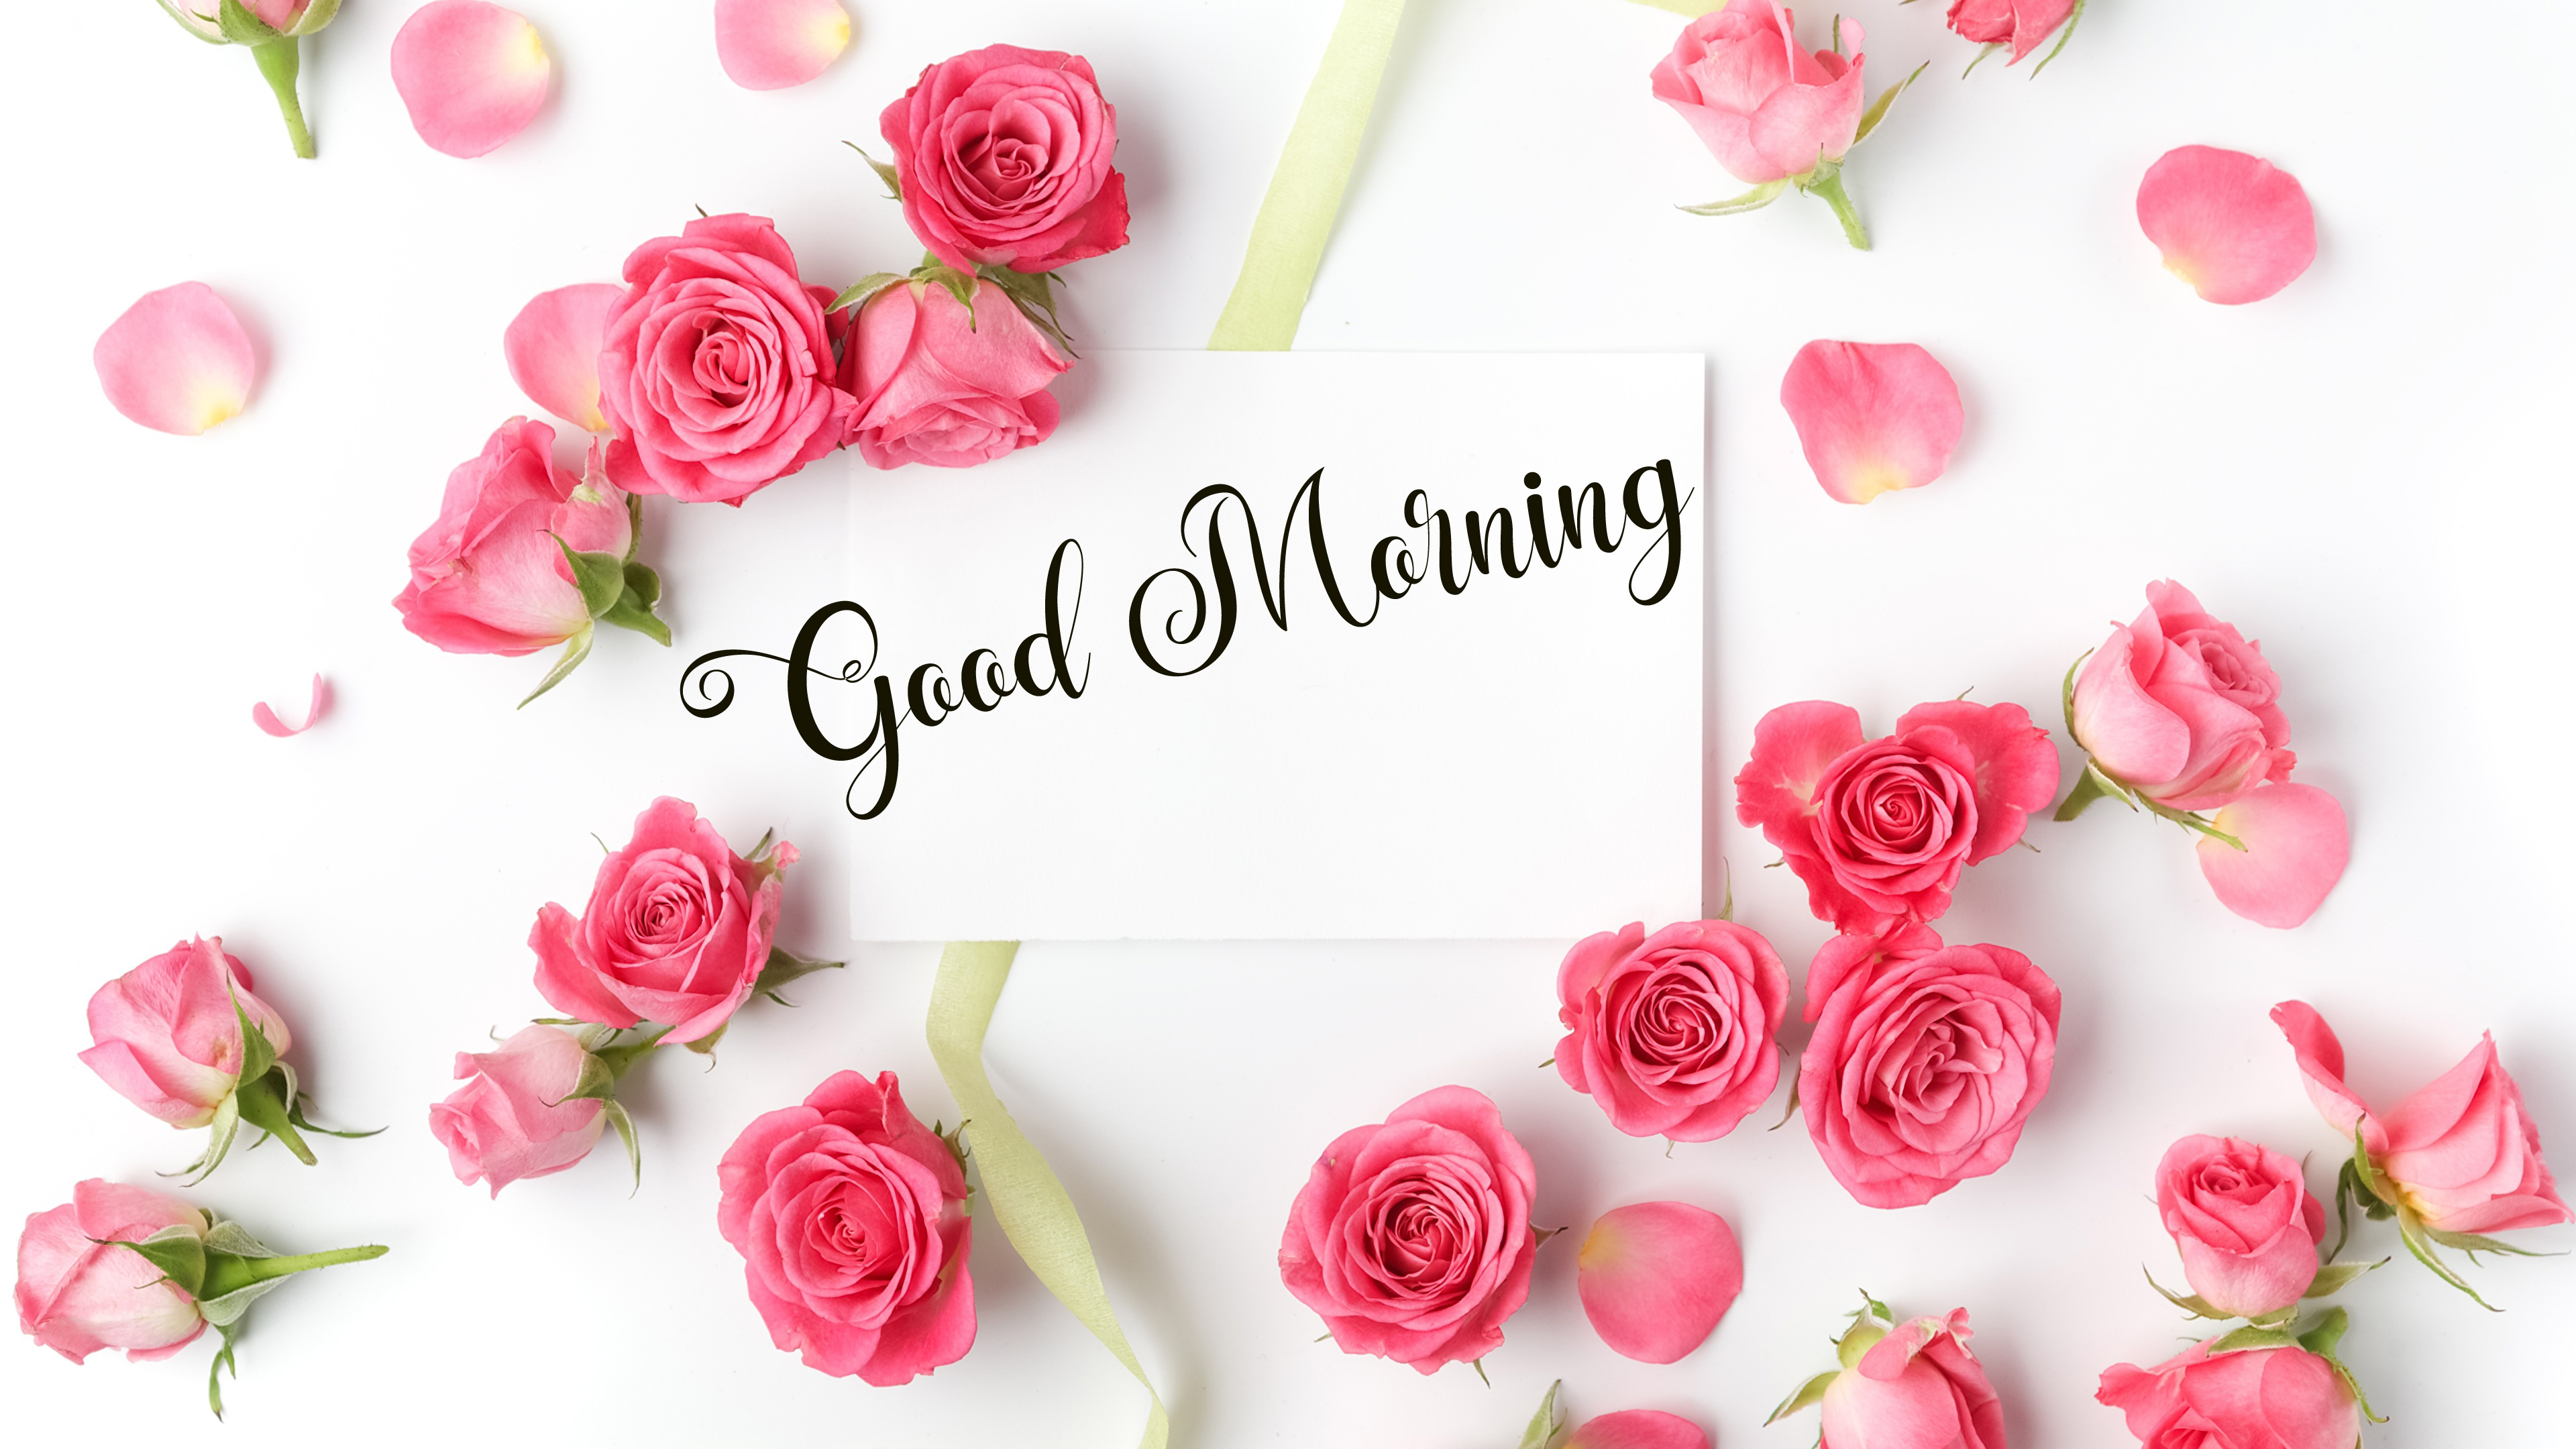 new flower good morning images wallpaper free download